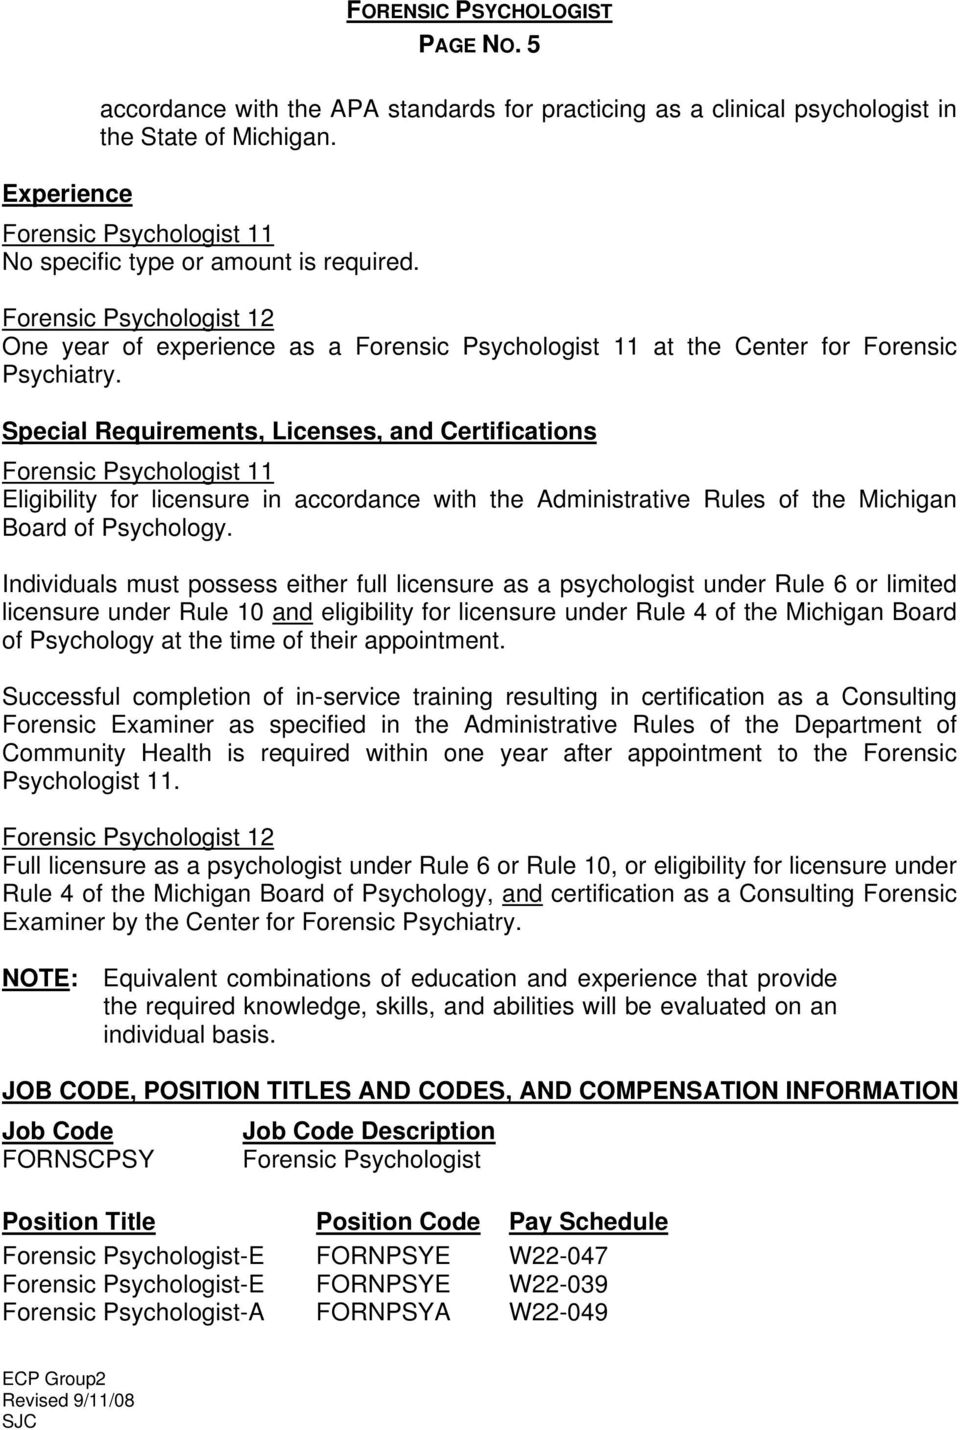 Special Requirements, Licenses, and Certifications Eligibility for licensure in accordance with the Administrative Rules of the Michigan Board of Psychology.